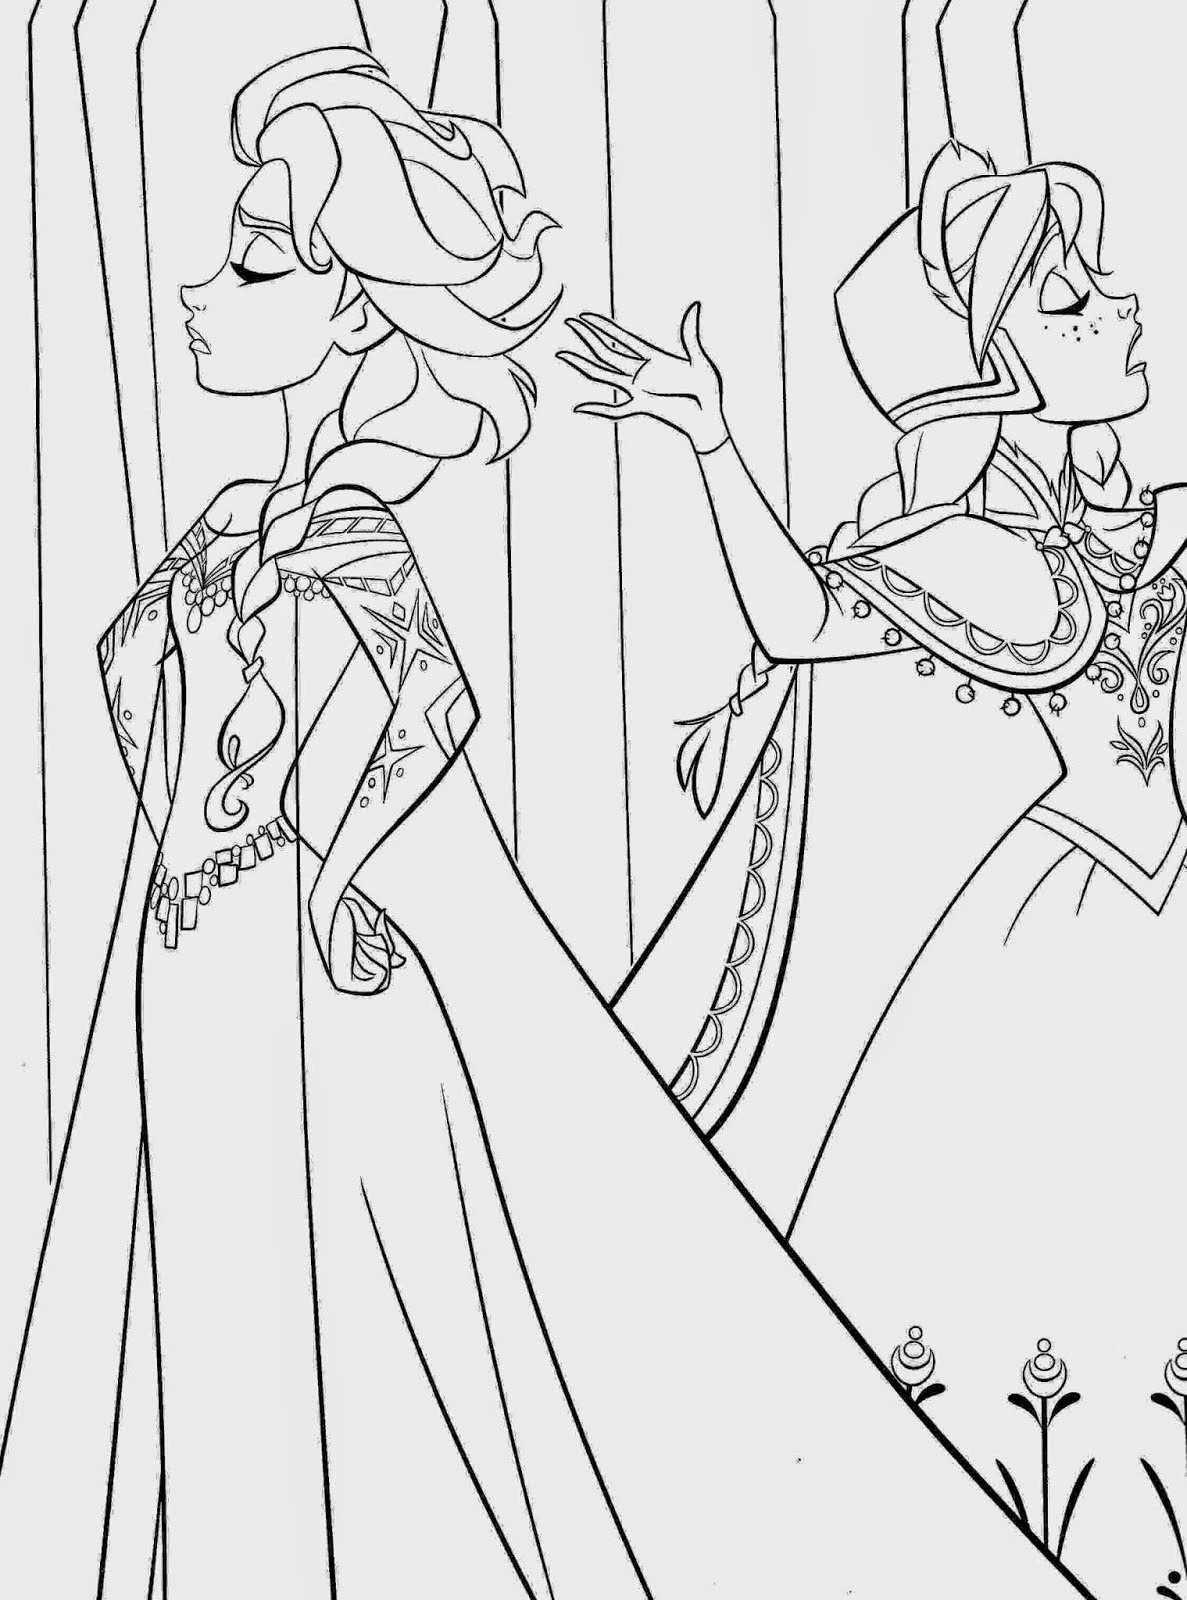 free printable frozen coloring pages 17 best beautiful coloring pages frozen ready to print pages coloring free printable frozen